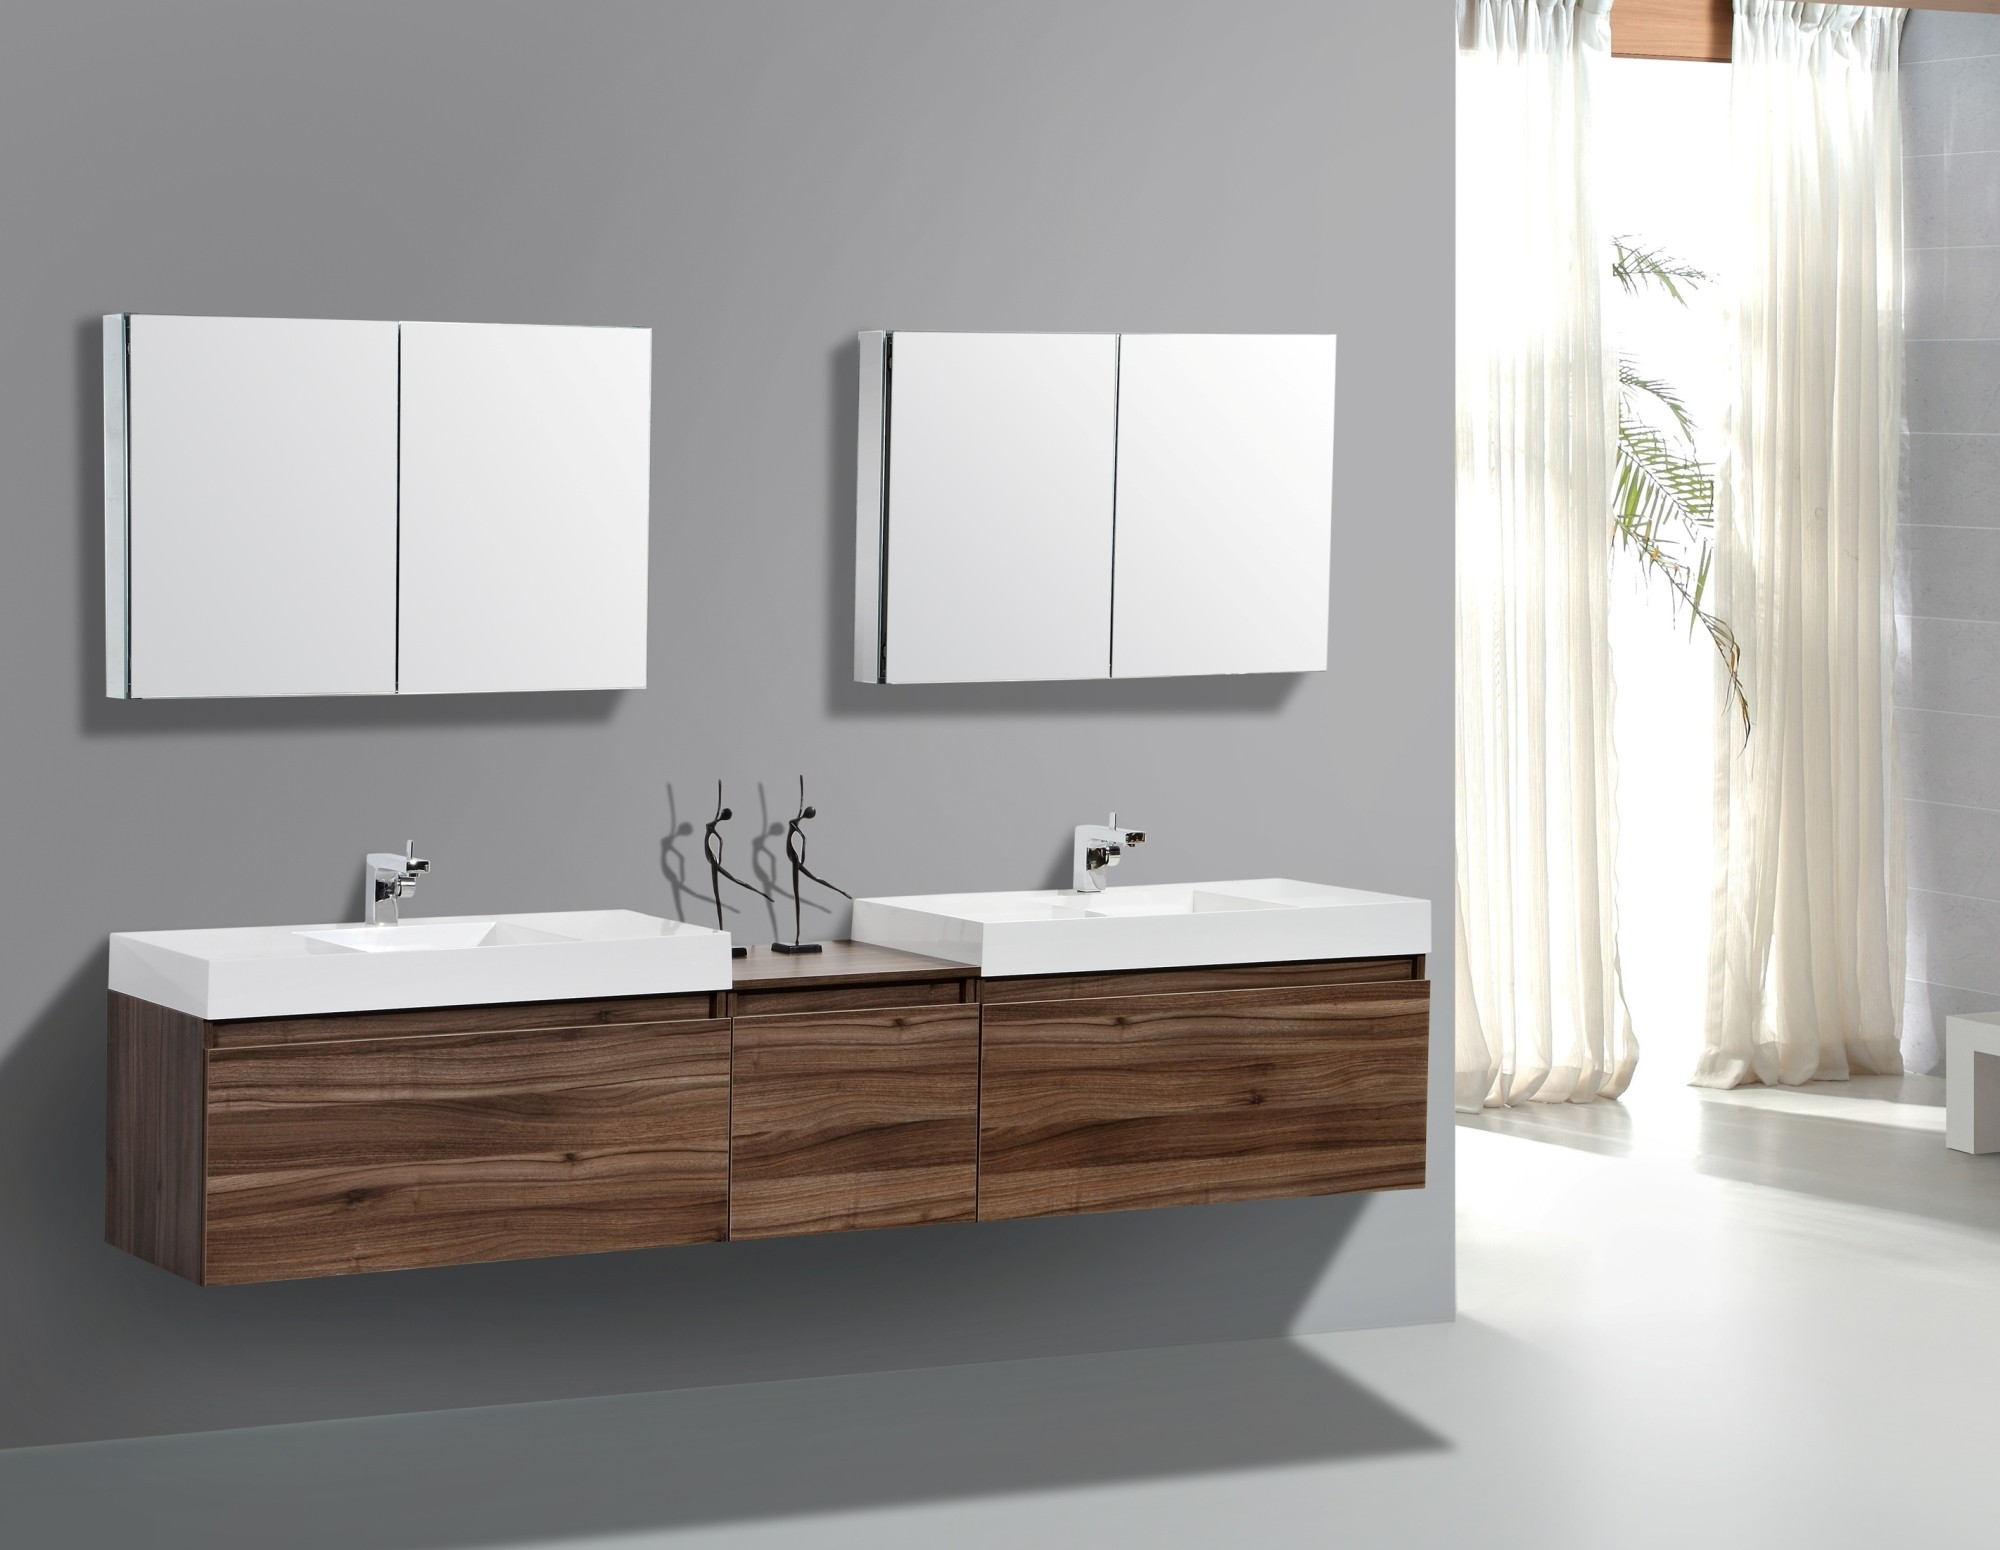 homes destiny modern mmb minneapolis bathroom